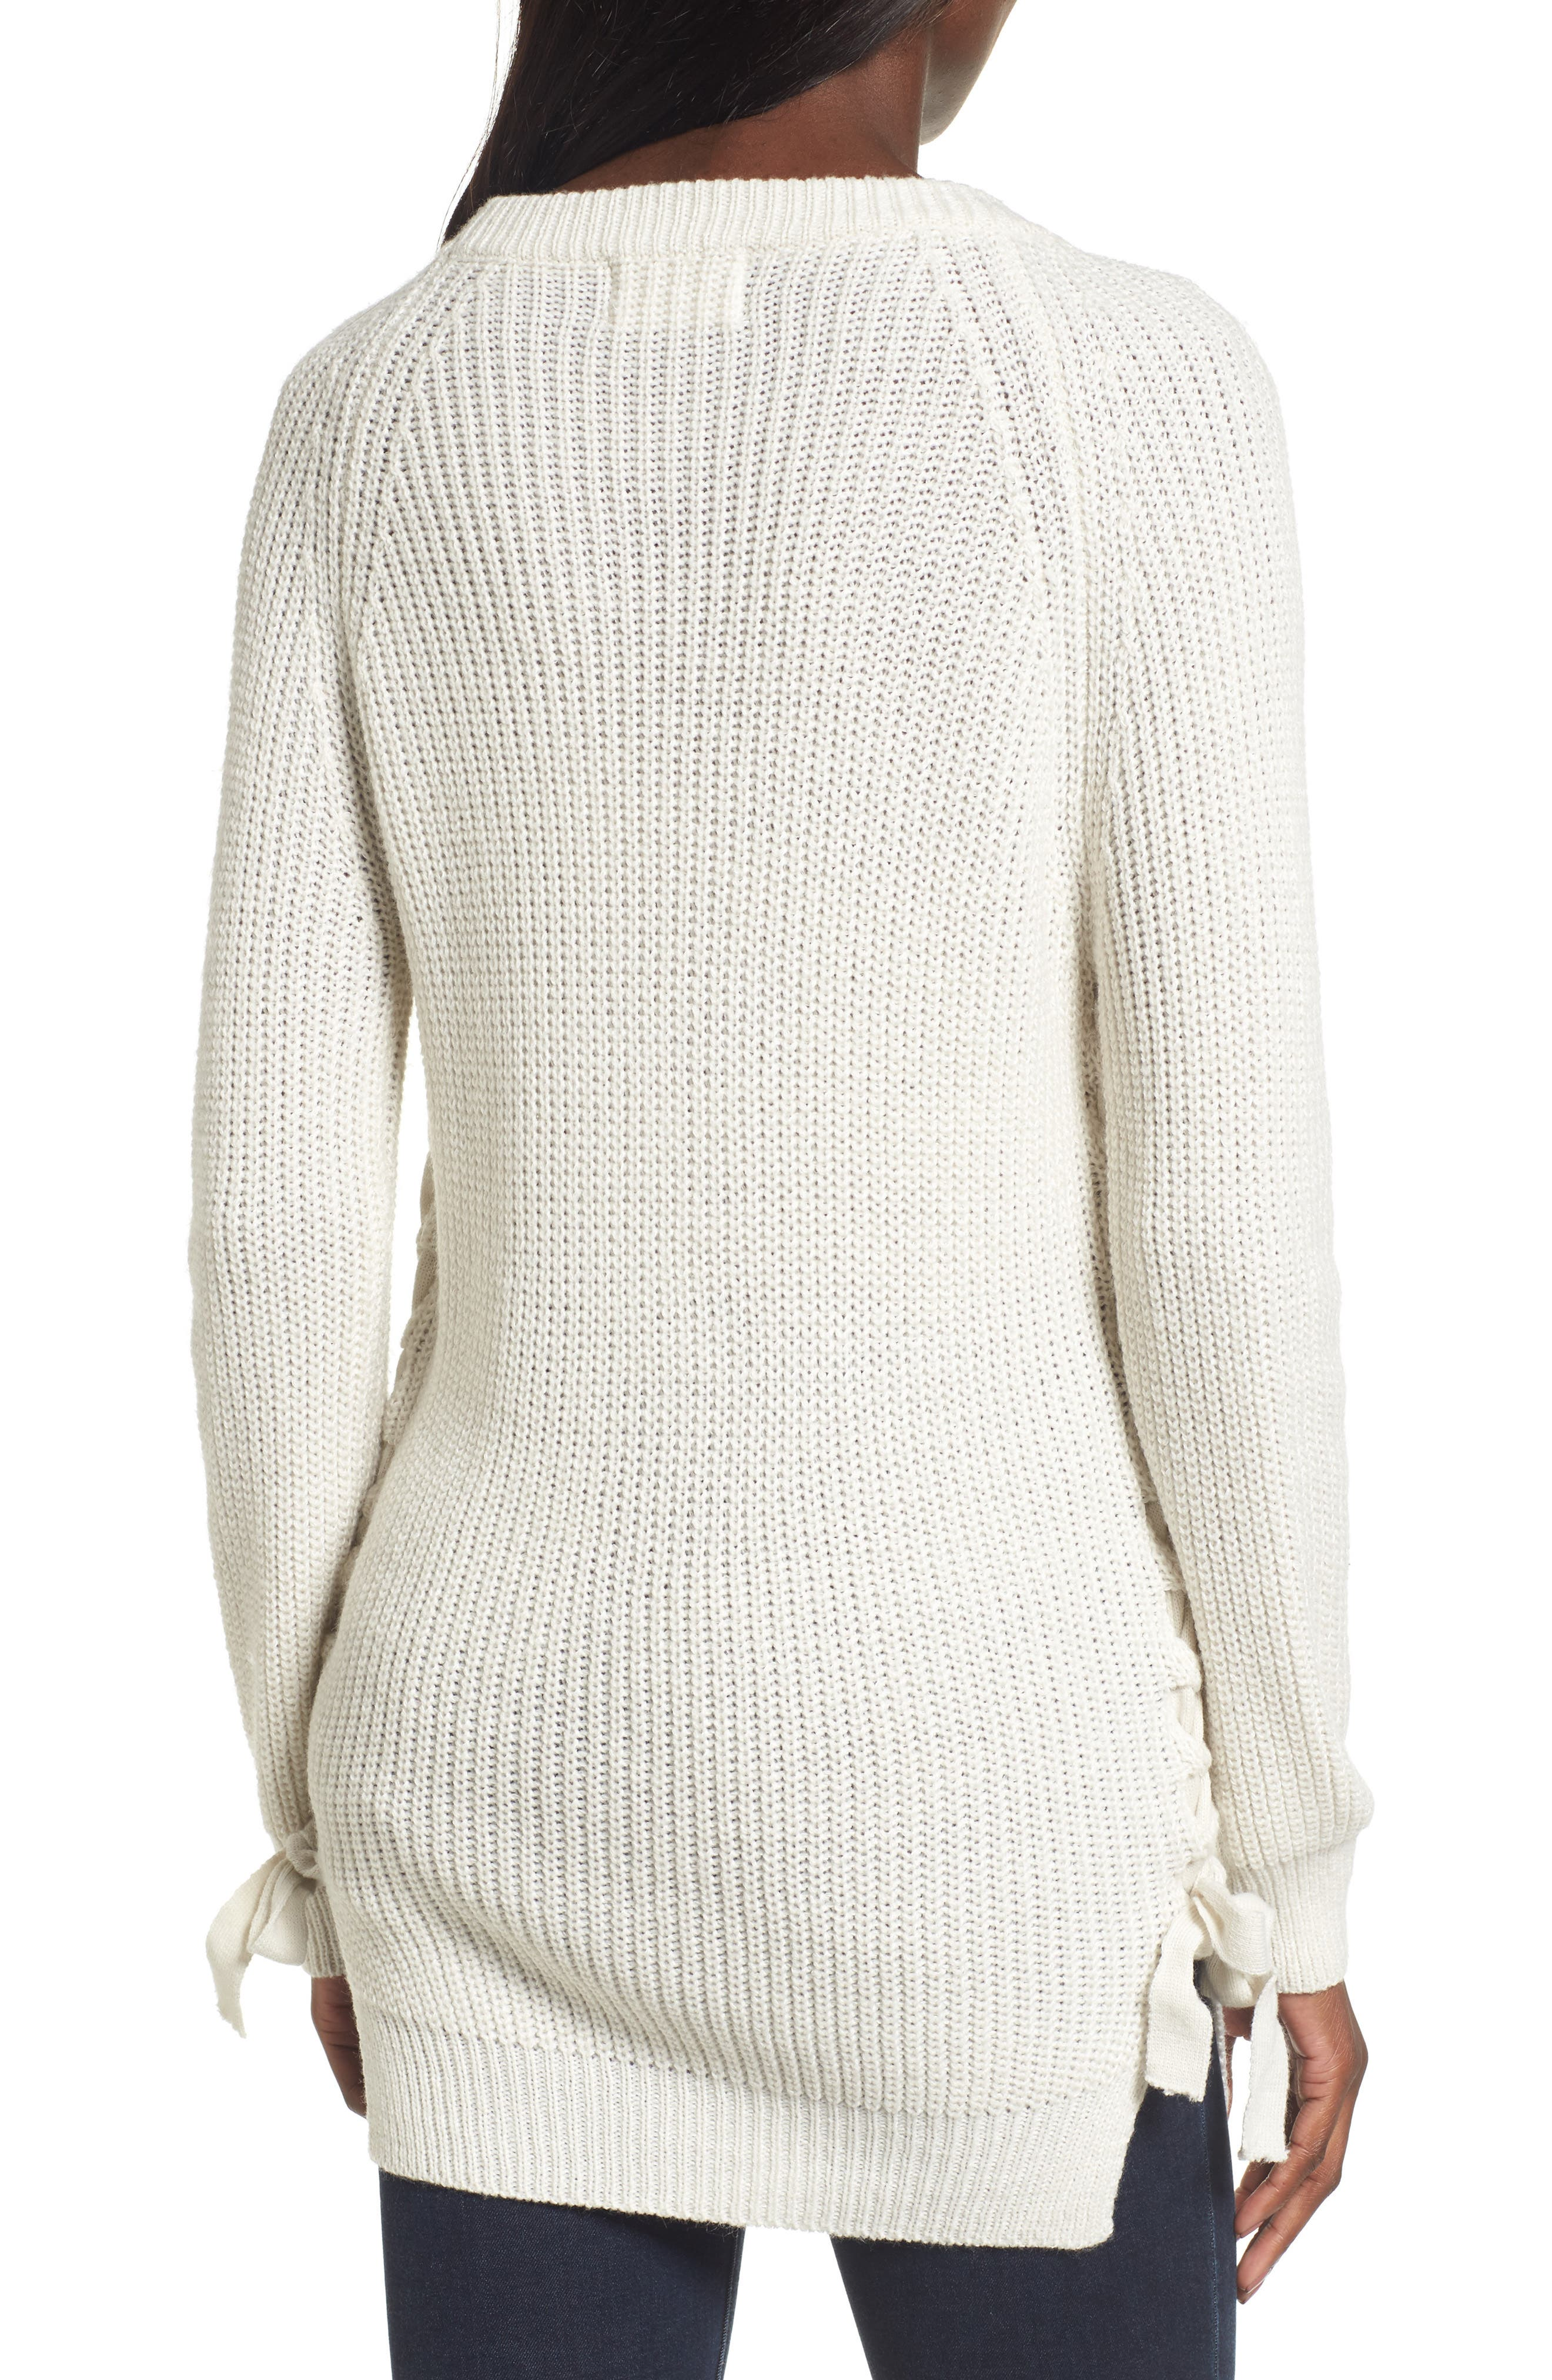 Reina Lace-Up Side Sweater,                             Alternate thumbnail 2, color,